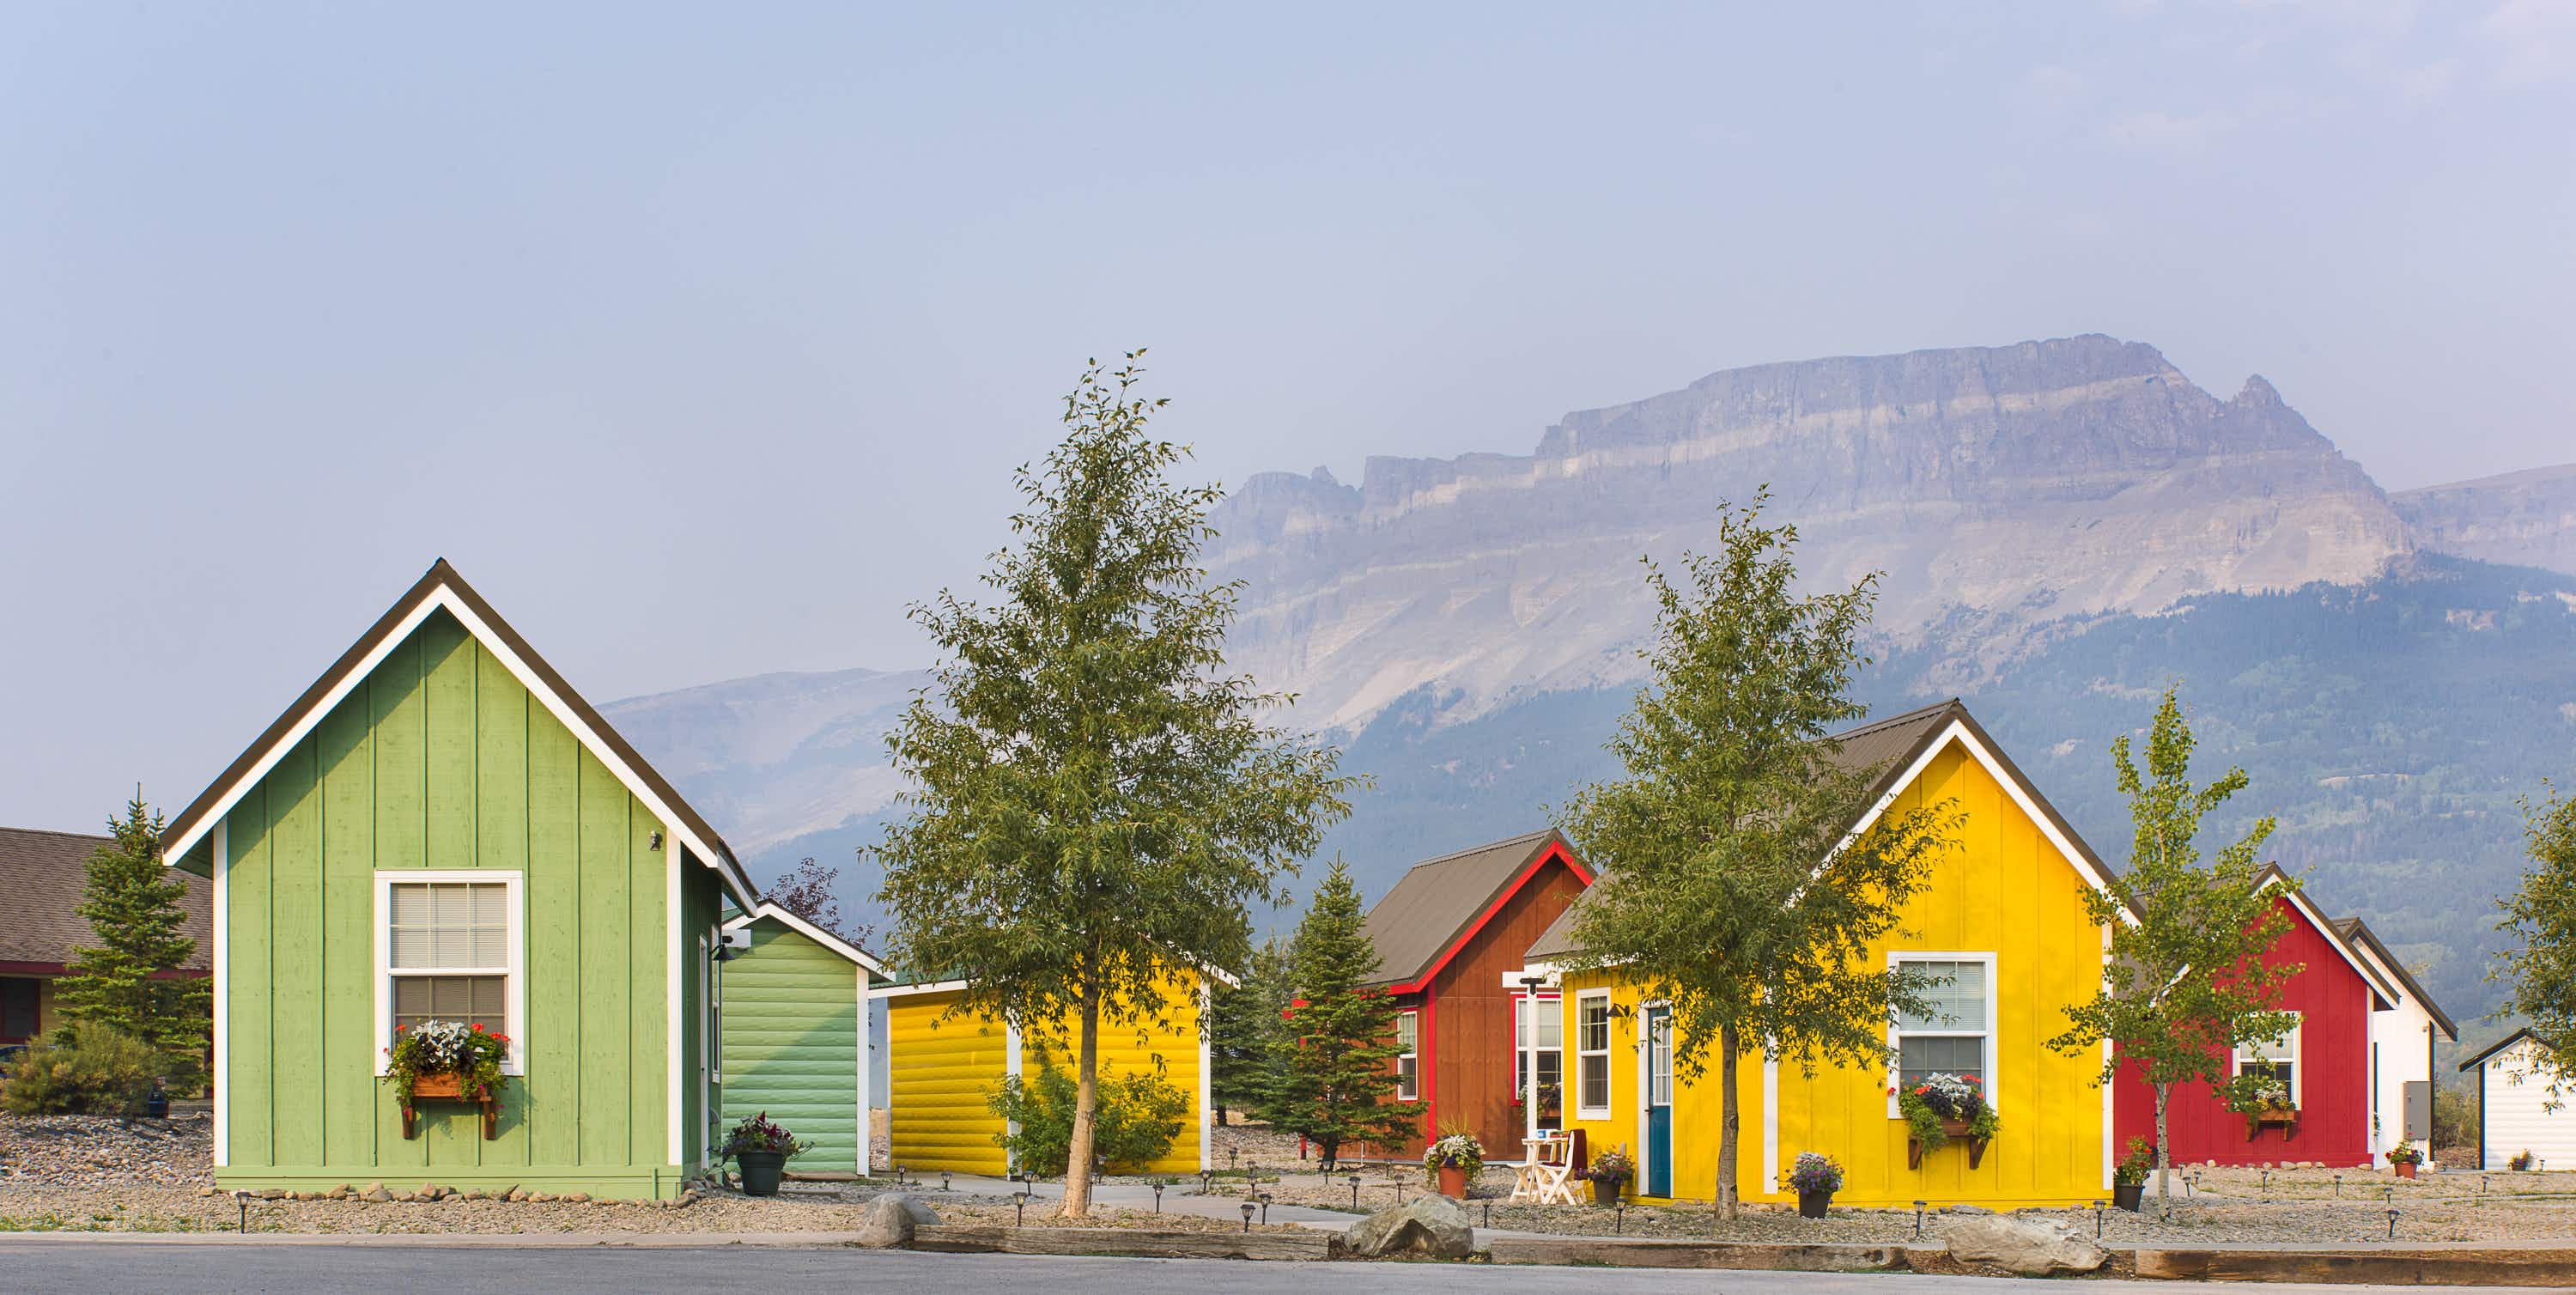 The tiny home trend has come to Glacier National Park with the Tiny Home Village at St Mary's Village. Image by Tiny Home Village